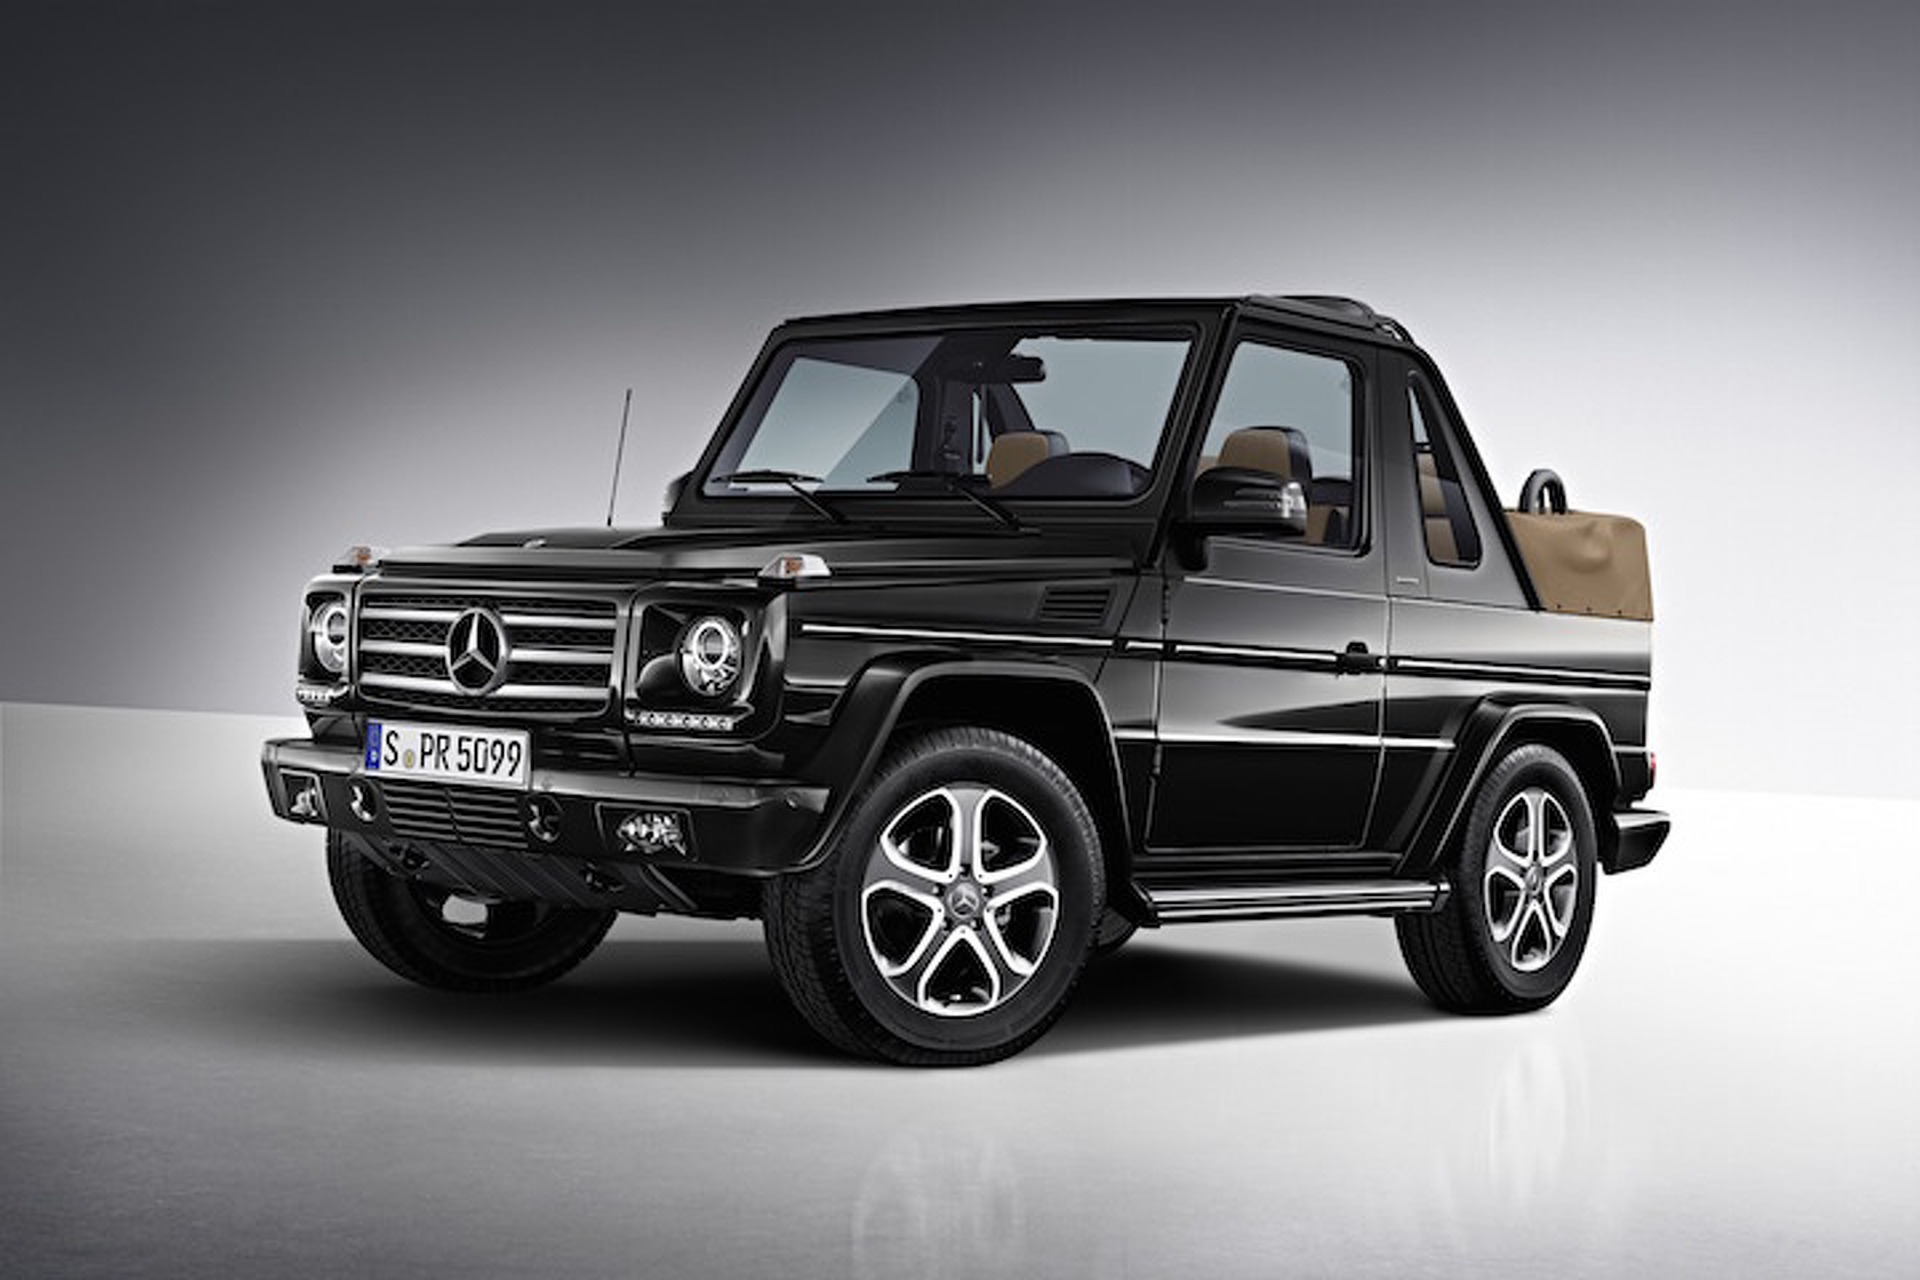 Mercedes Thinks Another Convertible SUV is a Good Idea